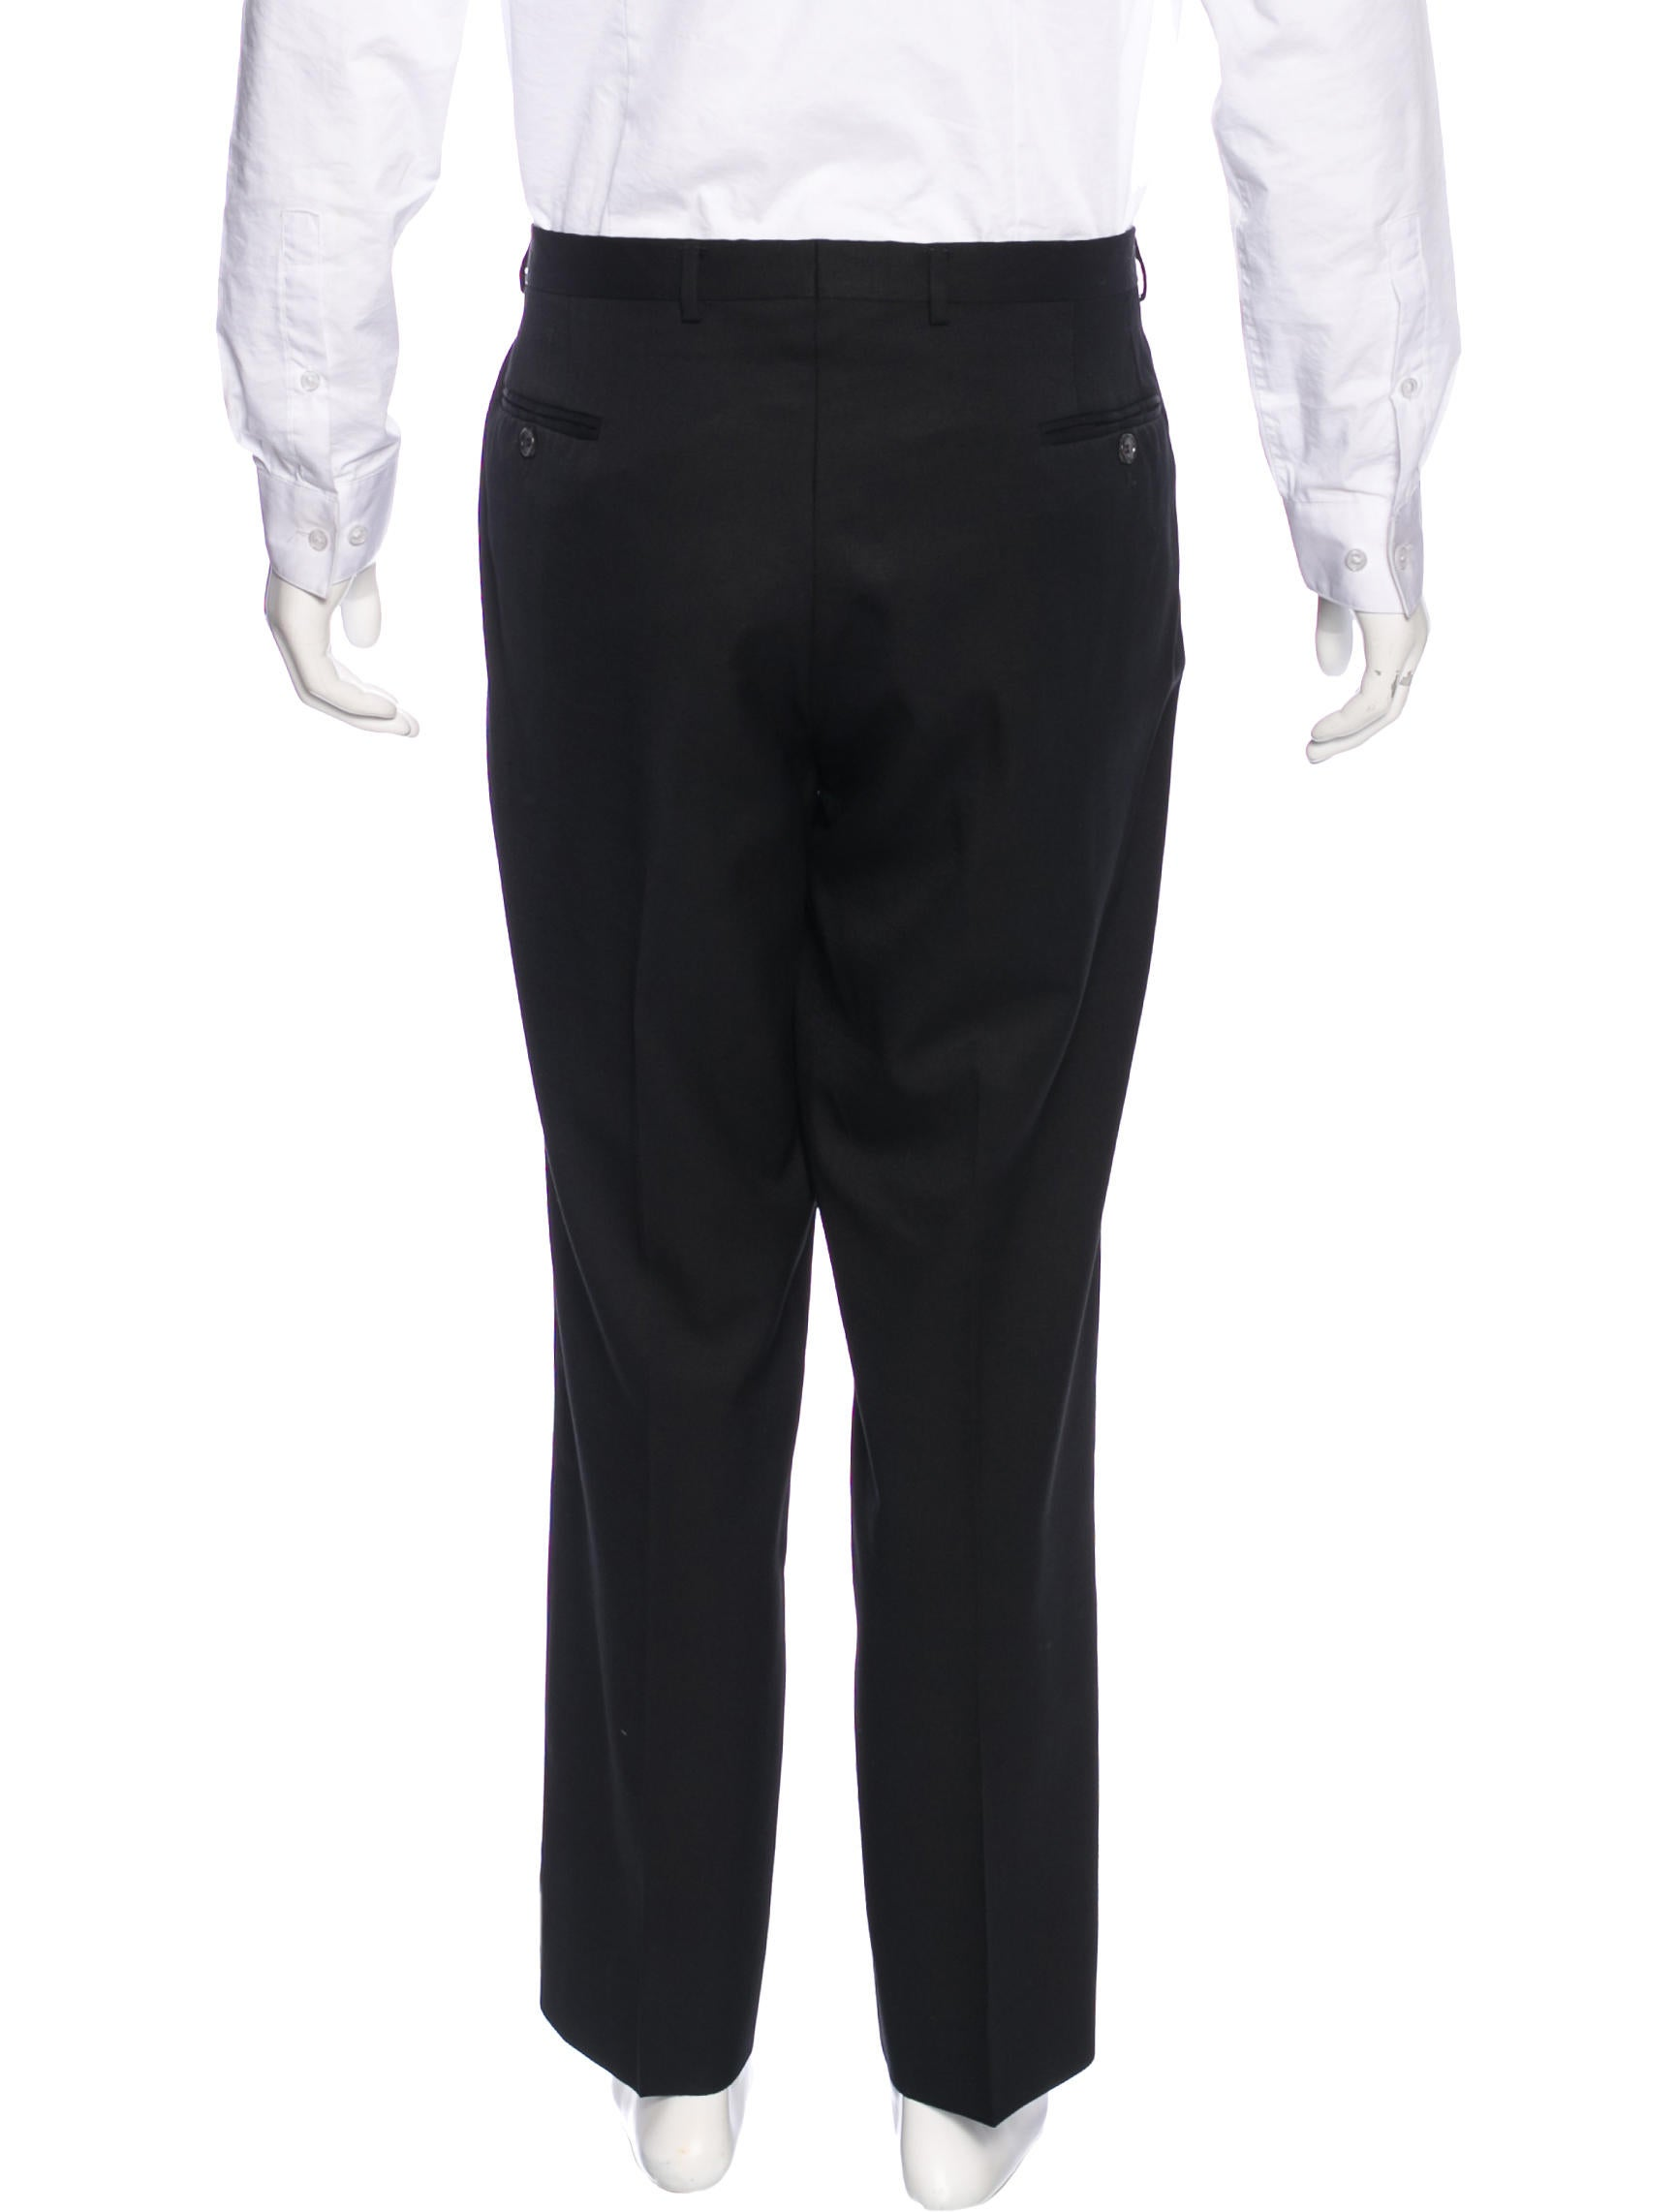 Find great deals on eBay for wool dress pants. Shop with confidence.